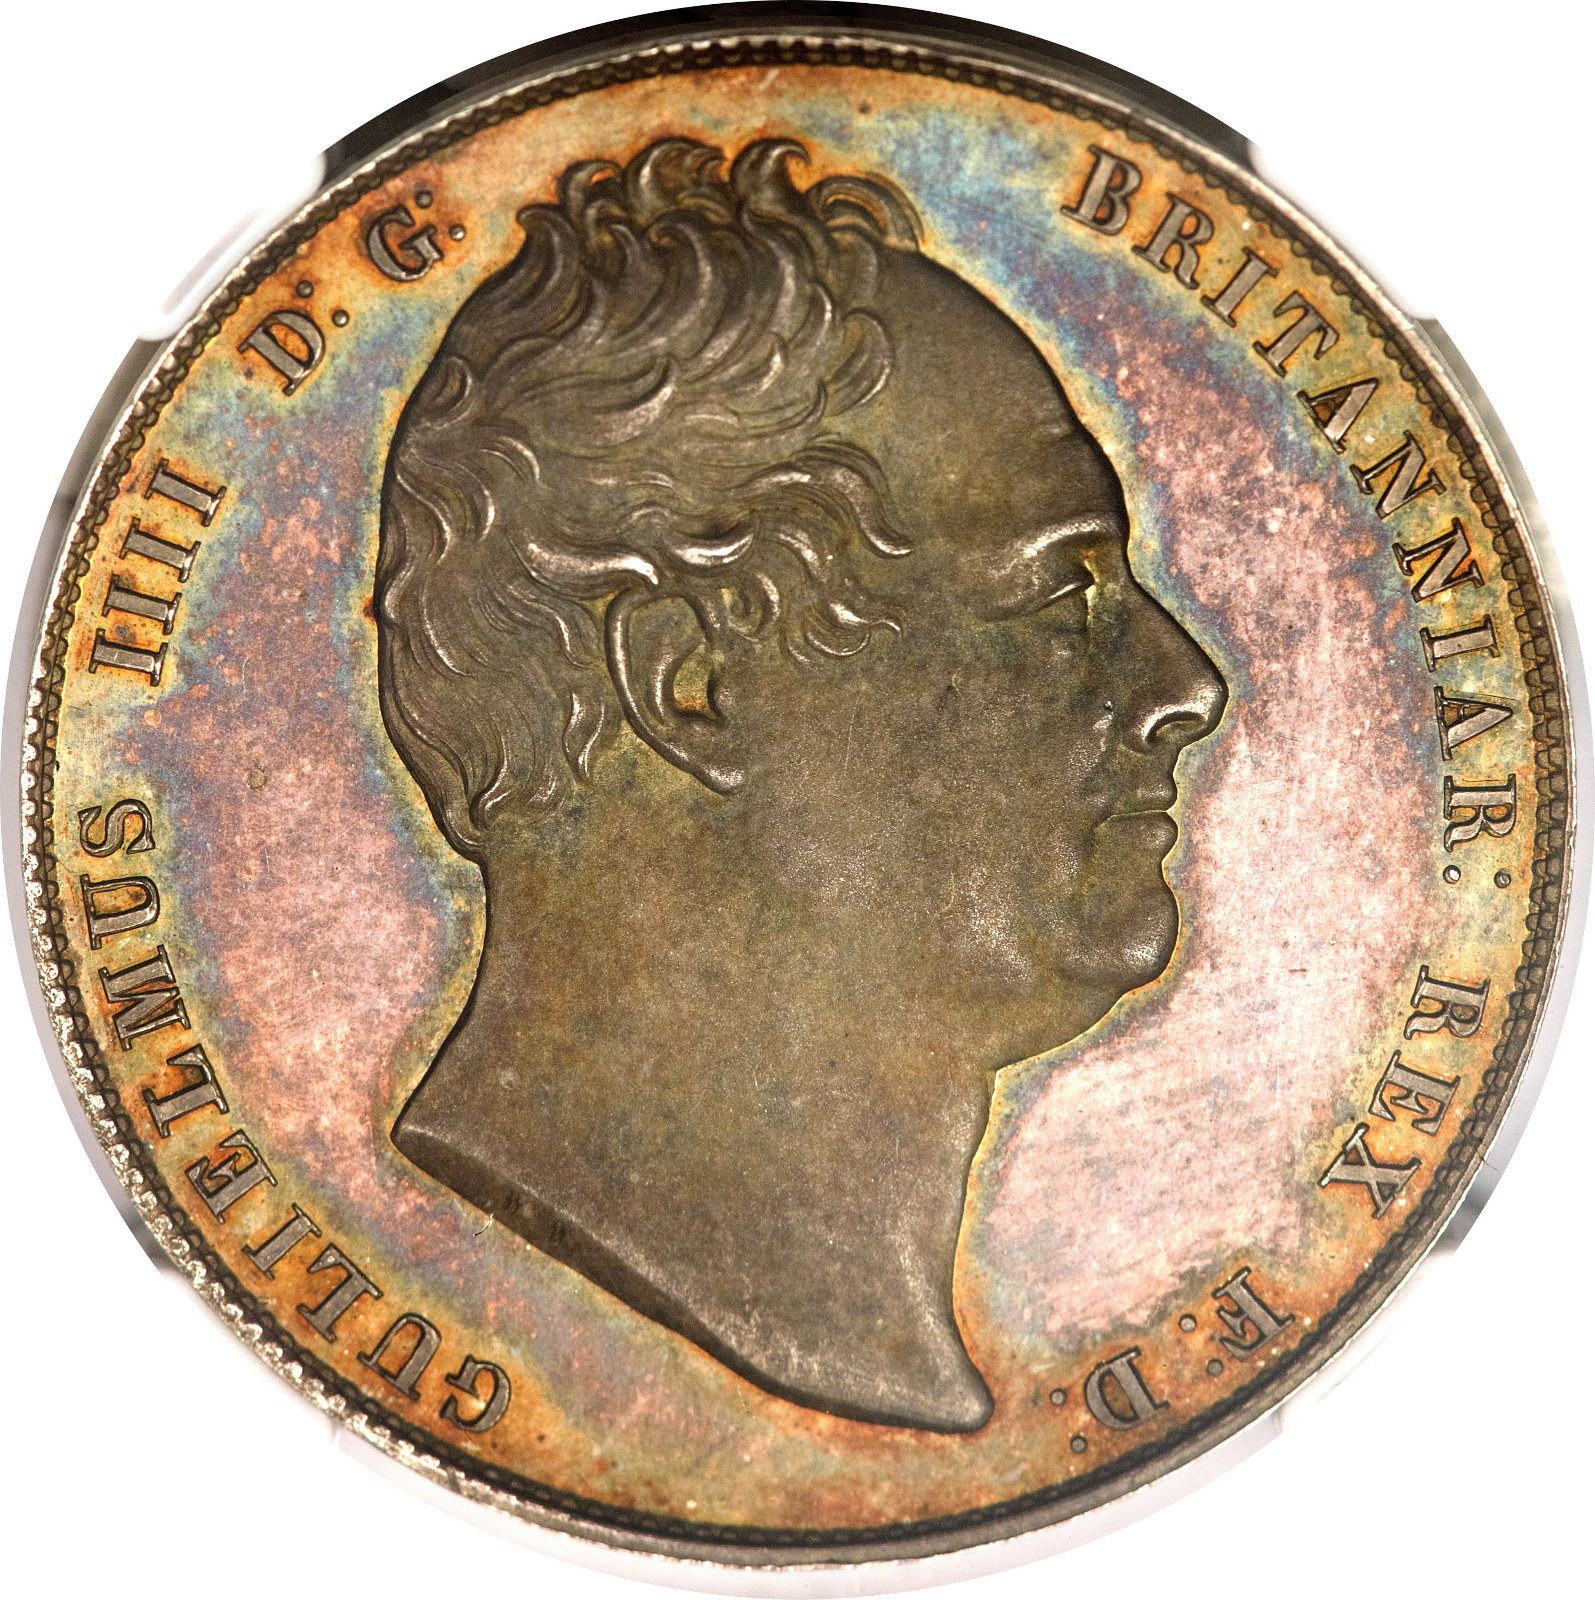 Halfcrown 1831 (Proof only): Photo Great Britain 1831 half crown